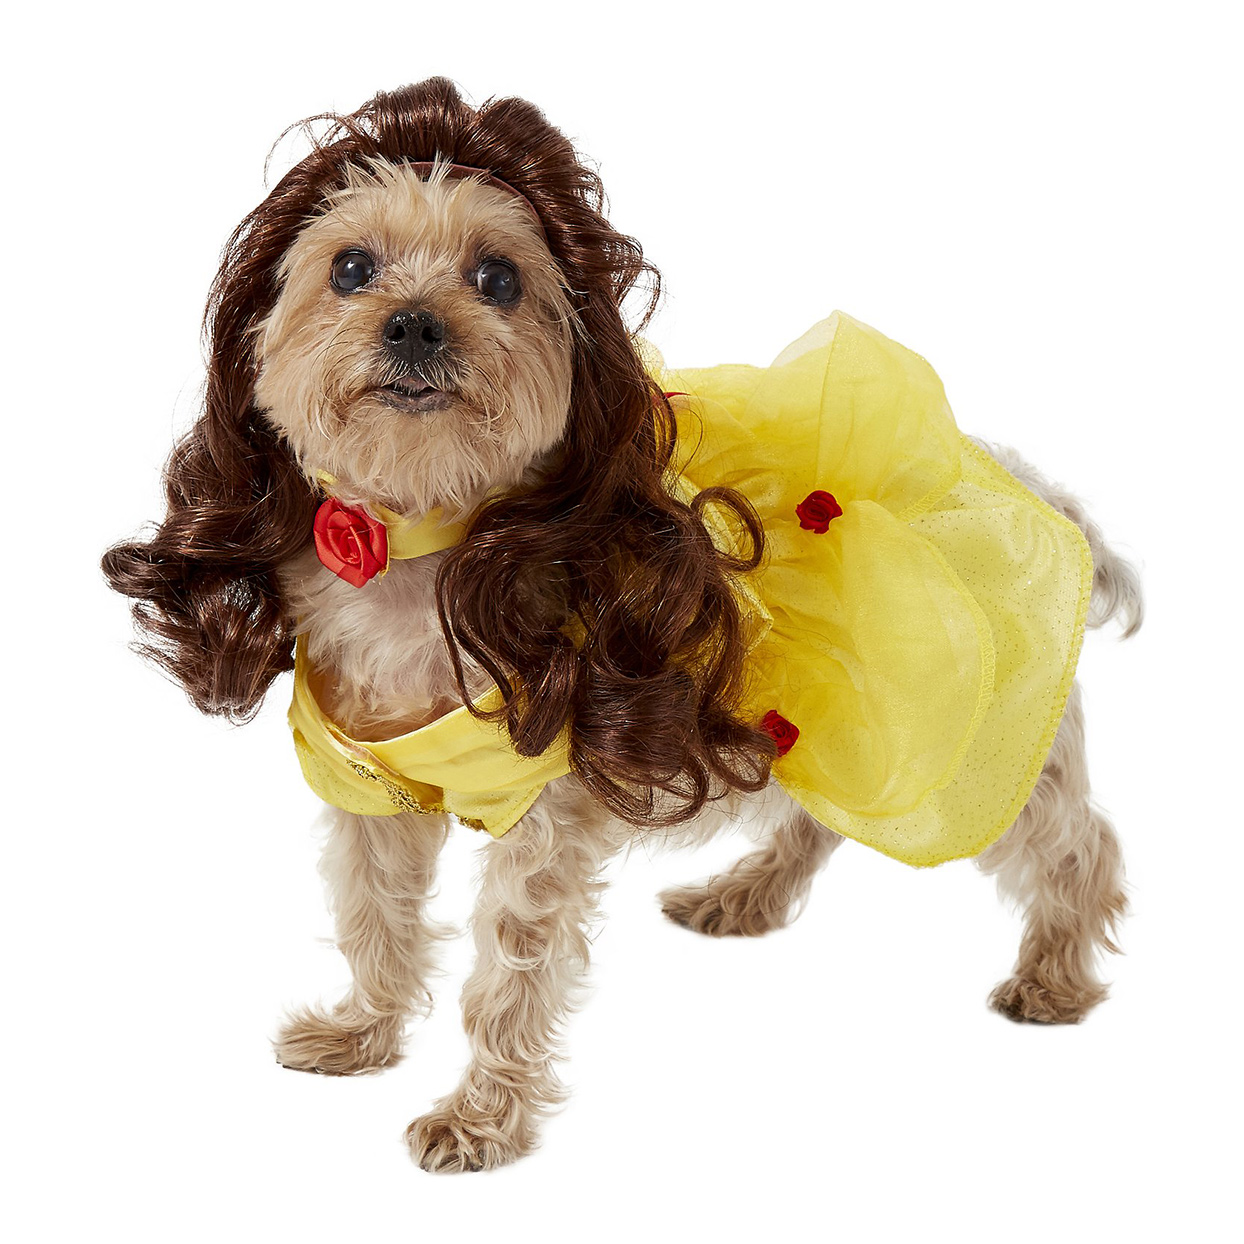 Dog wearing a Rubie's Costume Company Belle Disney Princess Costume on a white background